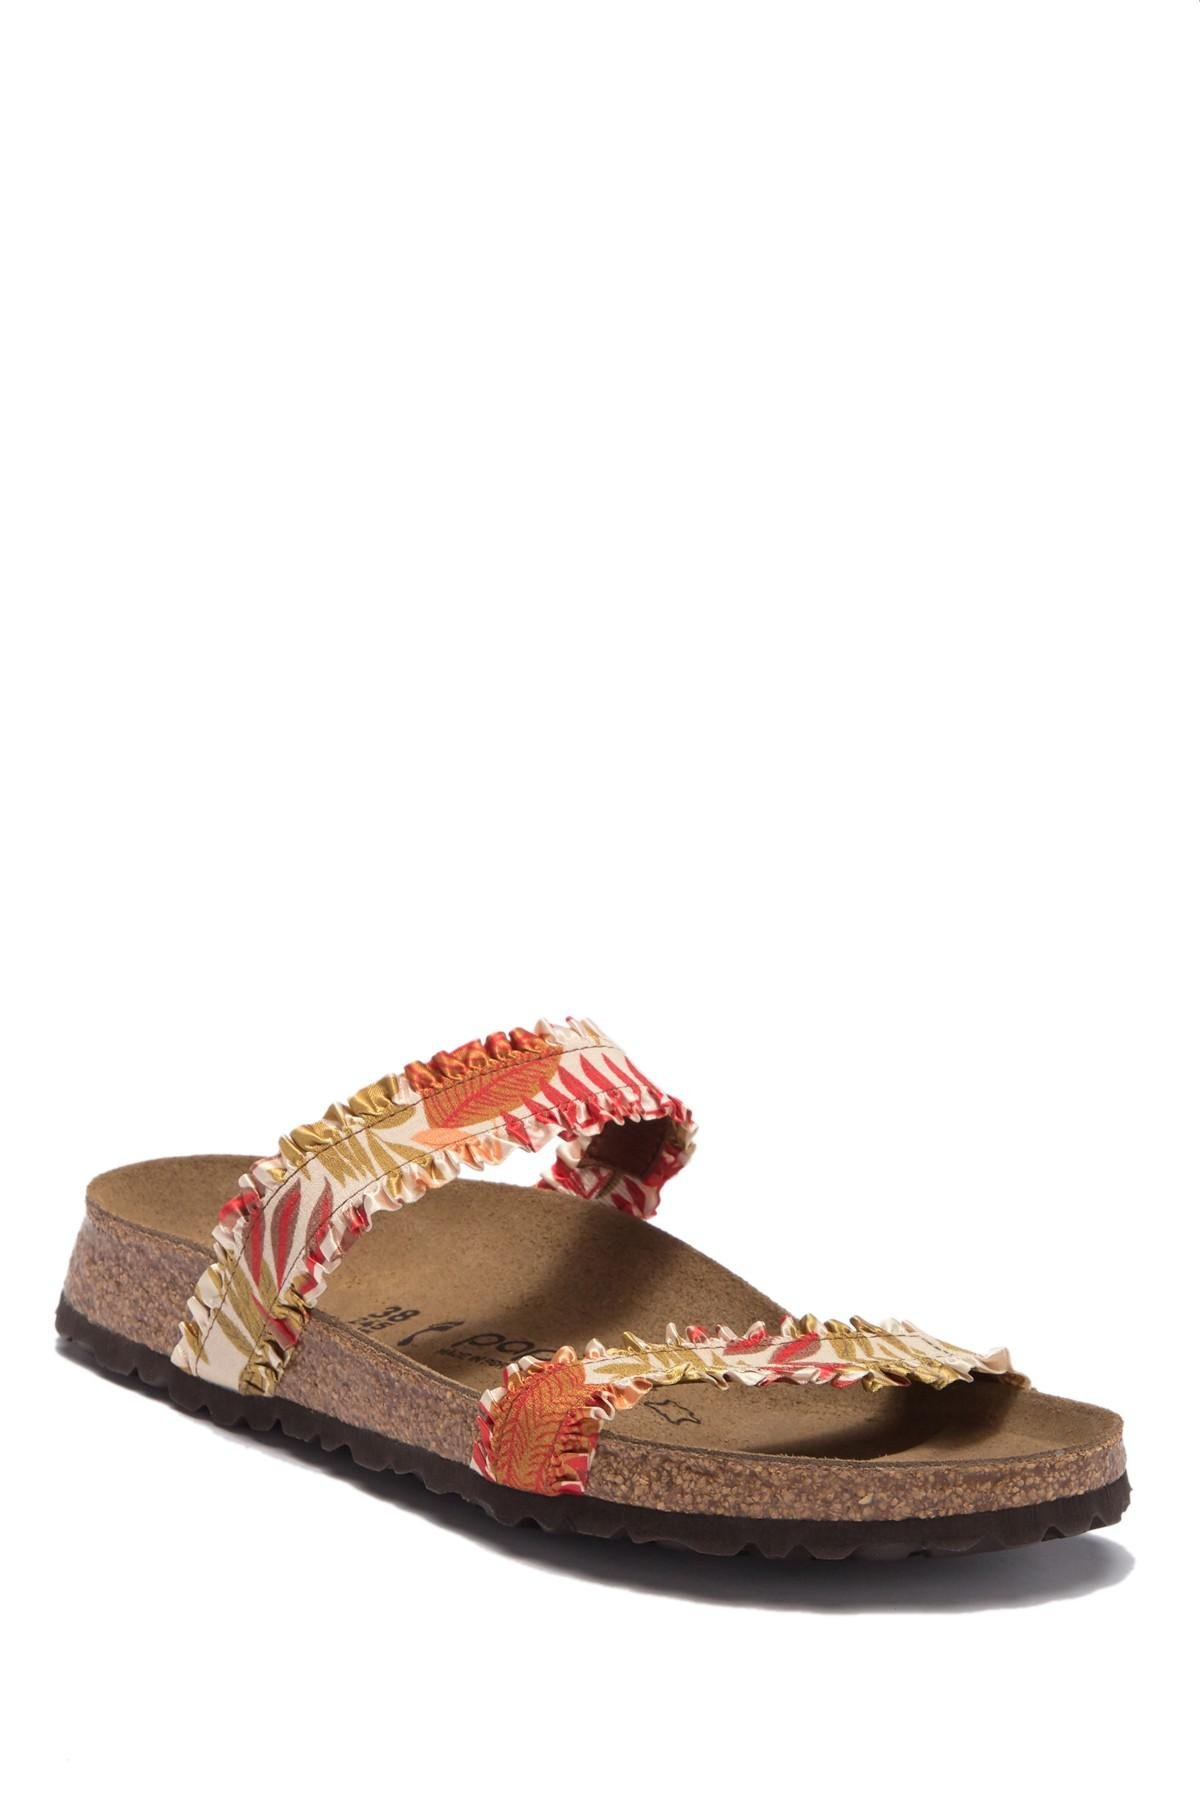 3ba2a2addb2a Lyst - Birkenstock Curacao Slide Sandal - Discontinued in Brown